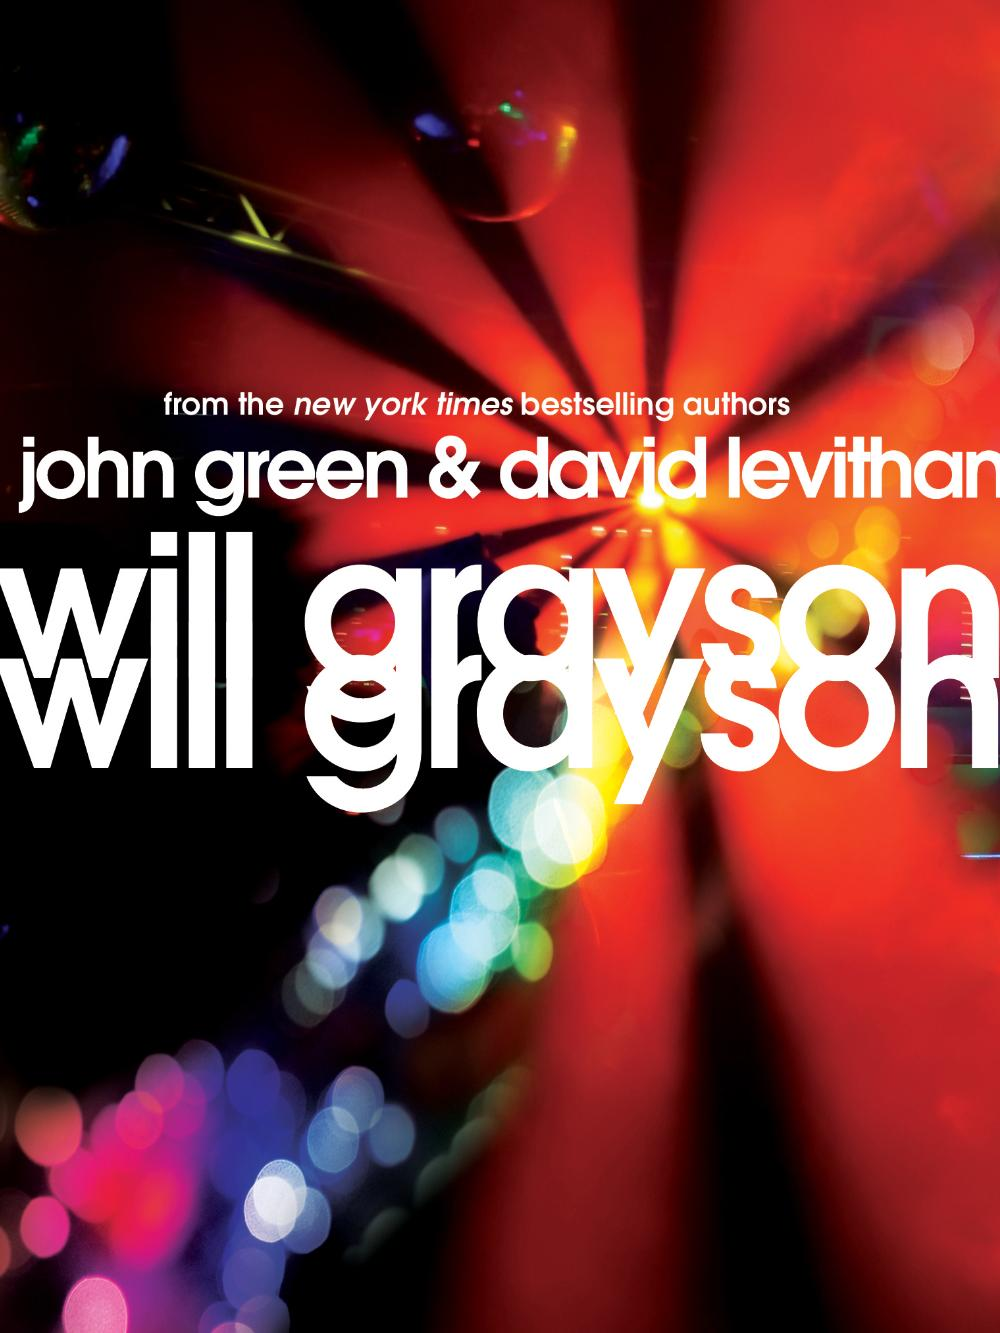 Will Grayson Will Grayson by John Green and David Levithan, from Teen Read Week